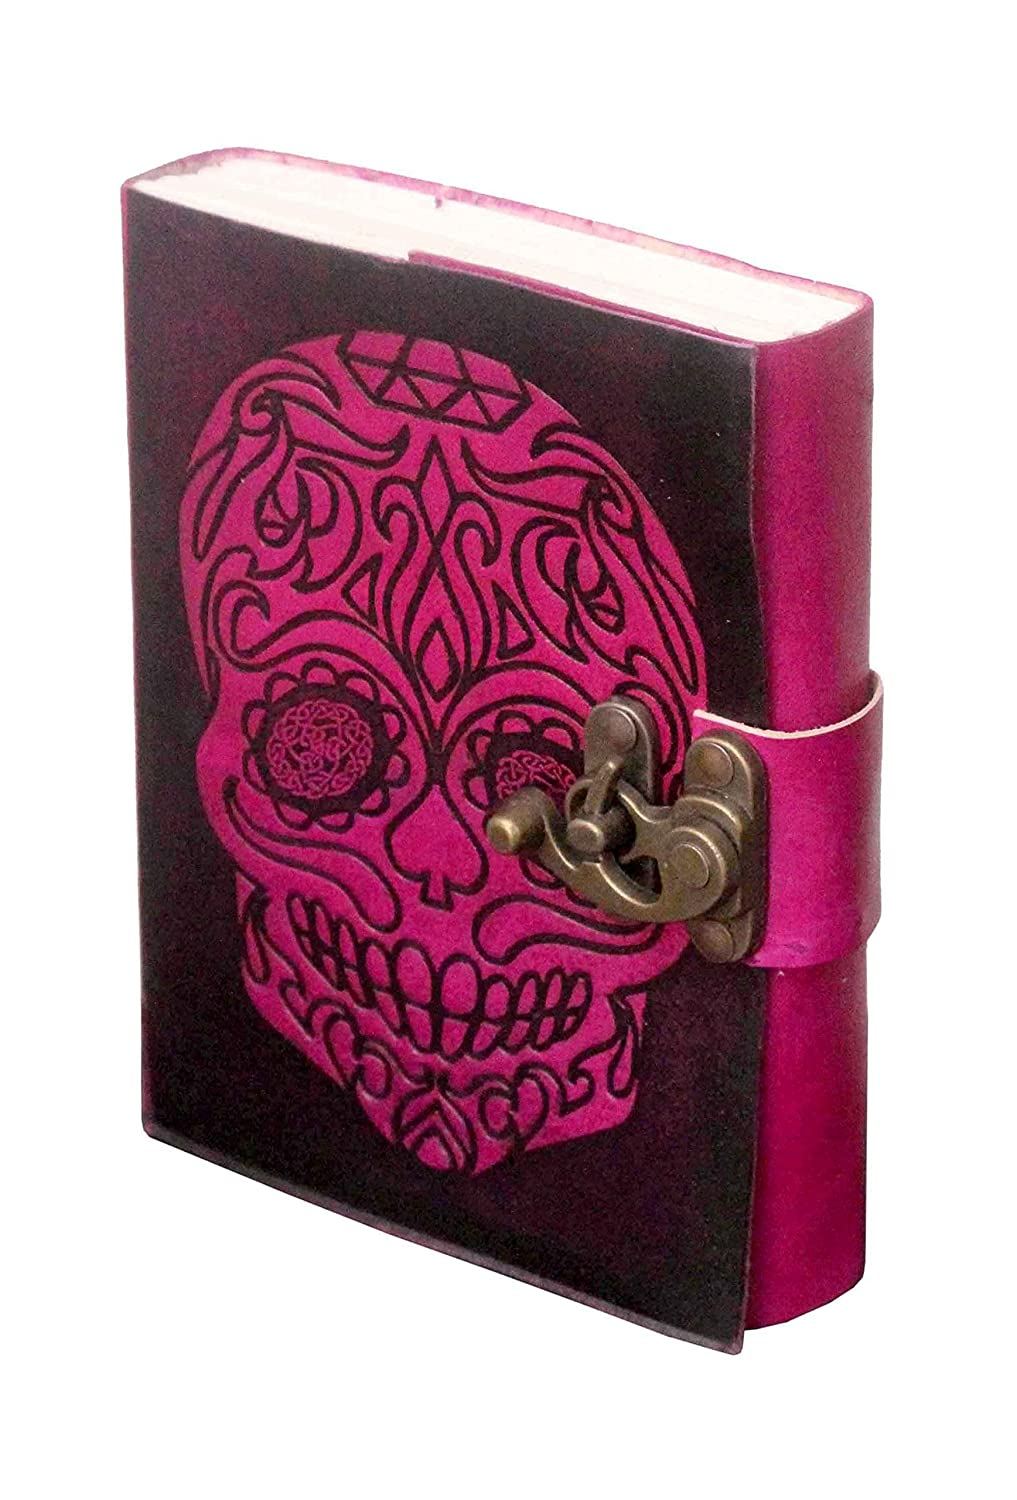 Handmade Purple Skull Embossed Leather Journal Pocket style Double Color Metal Lock